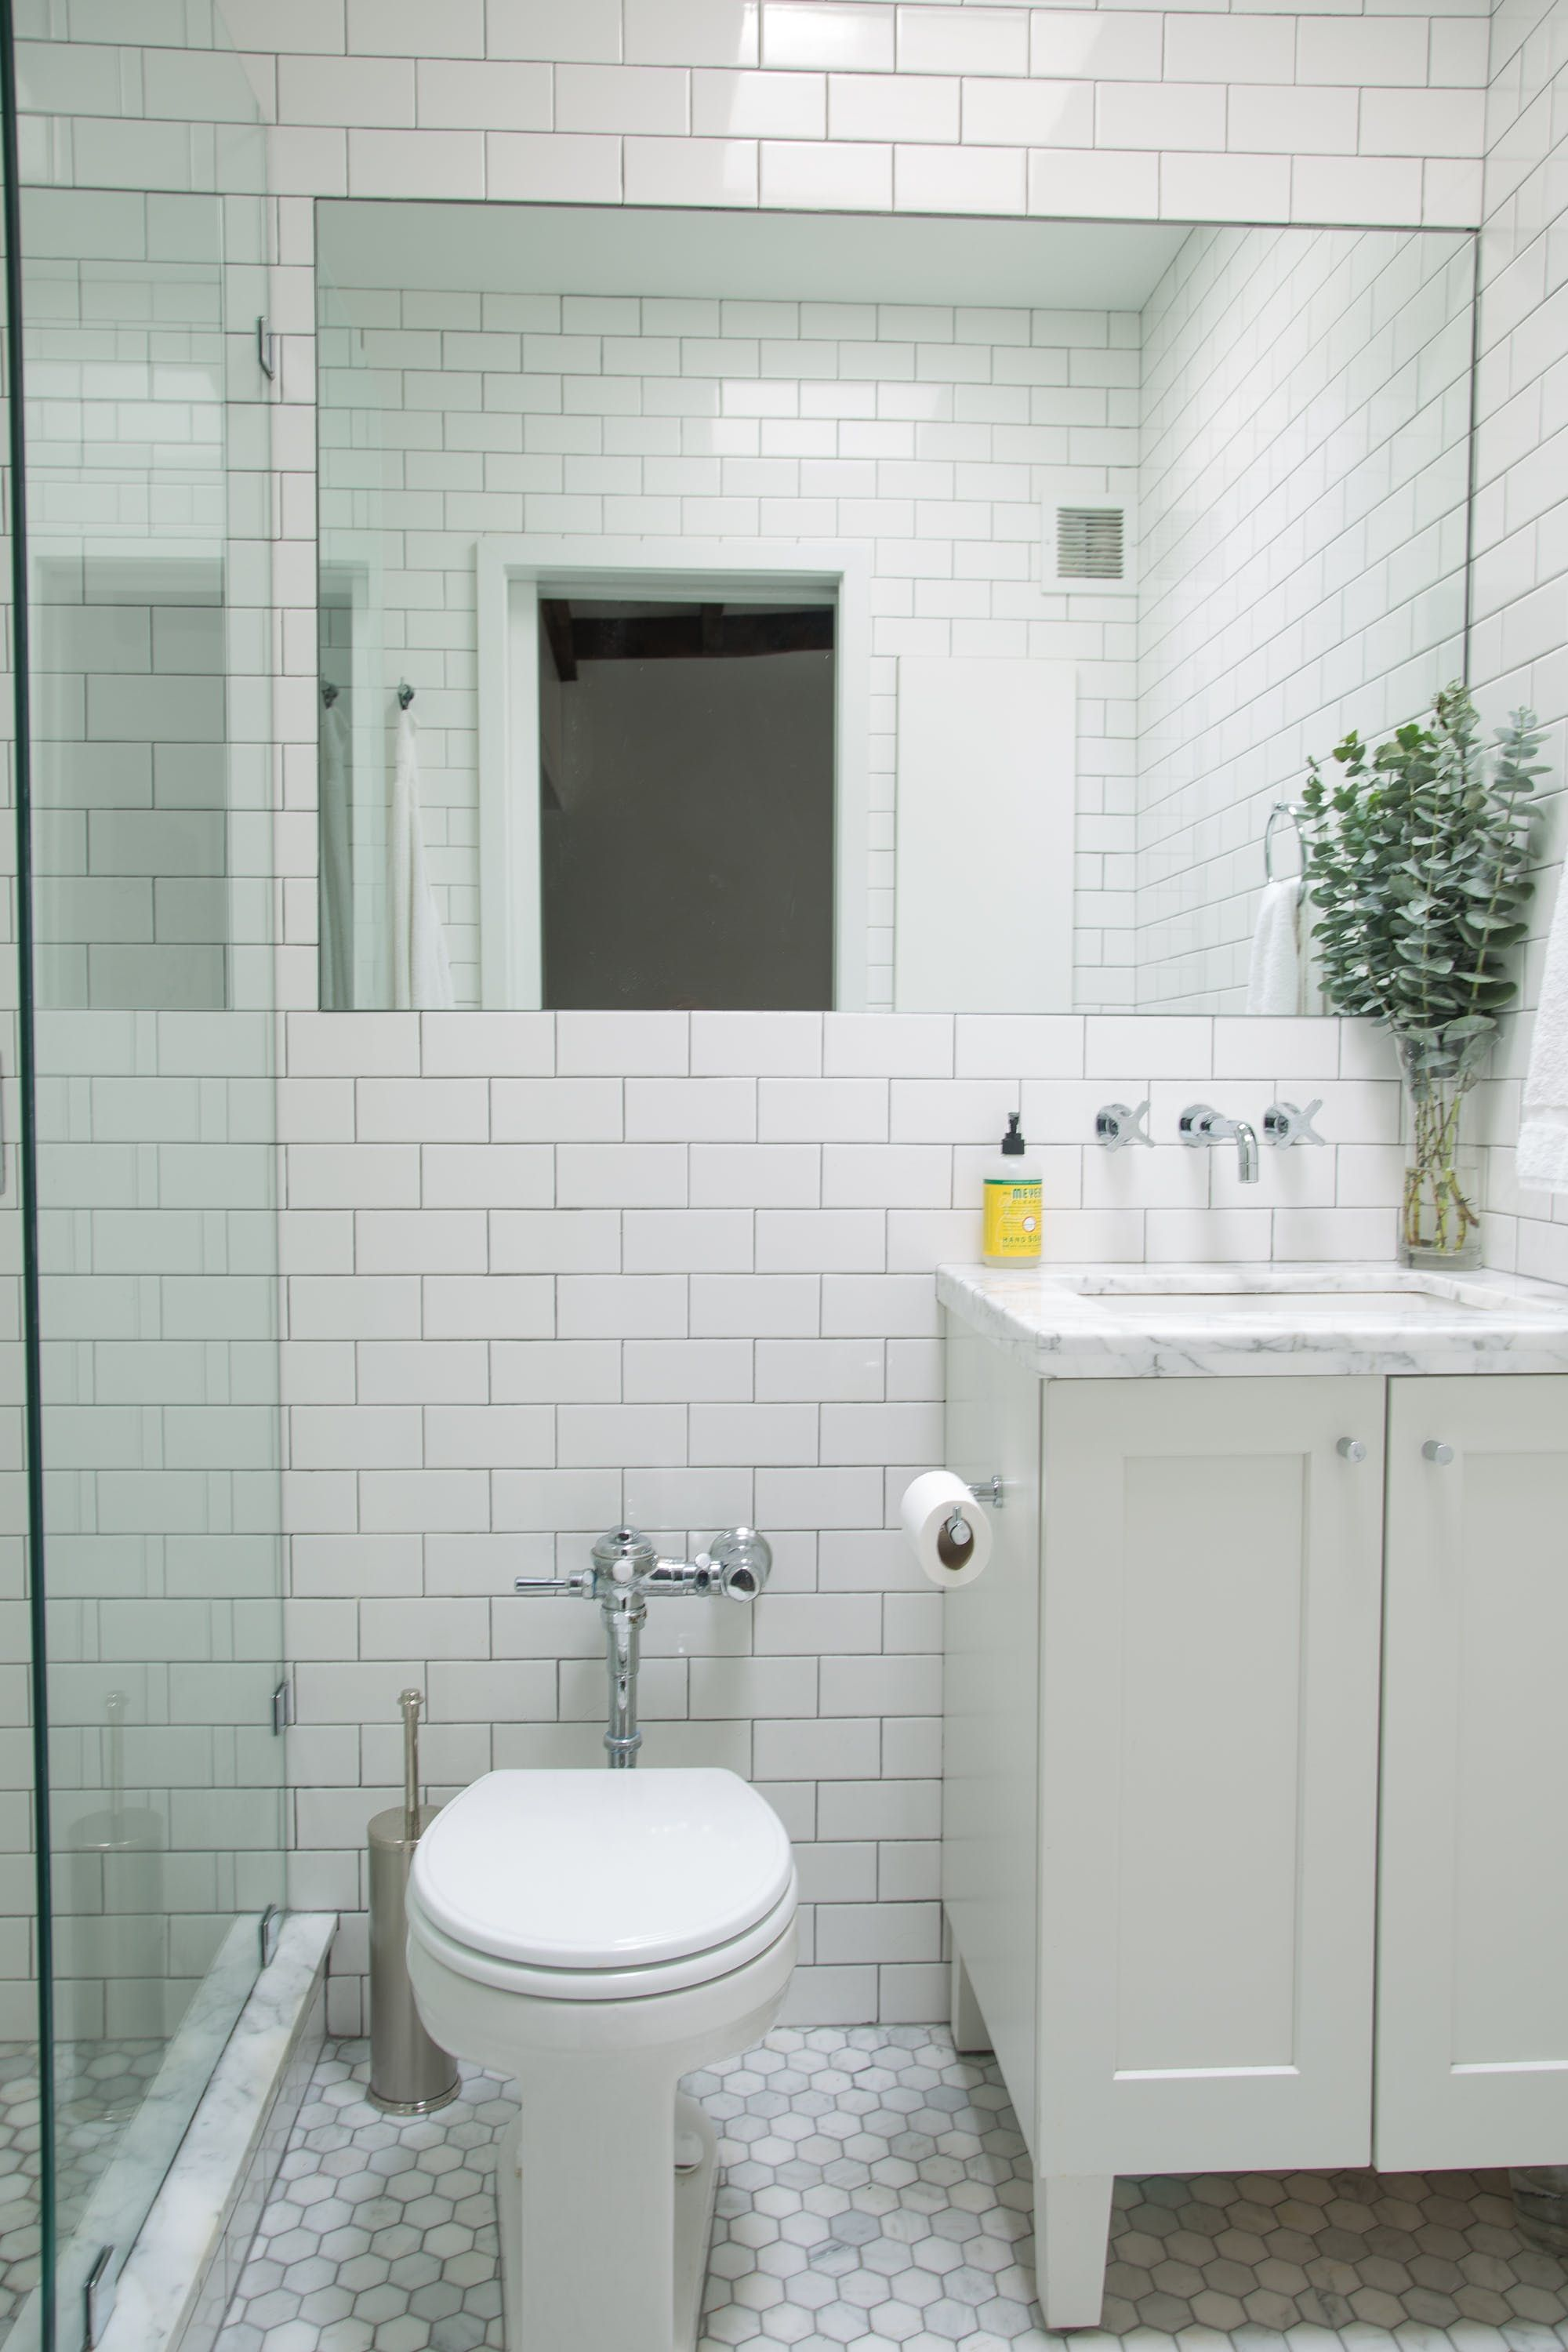 We Also Put In A Custom Wall Medicine Cabinet The Bathroom Behind Sink That Allowed Us To Install An Extra Tall And Wide Flat Mirror